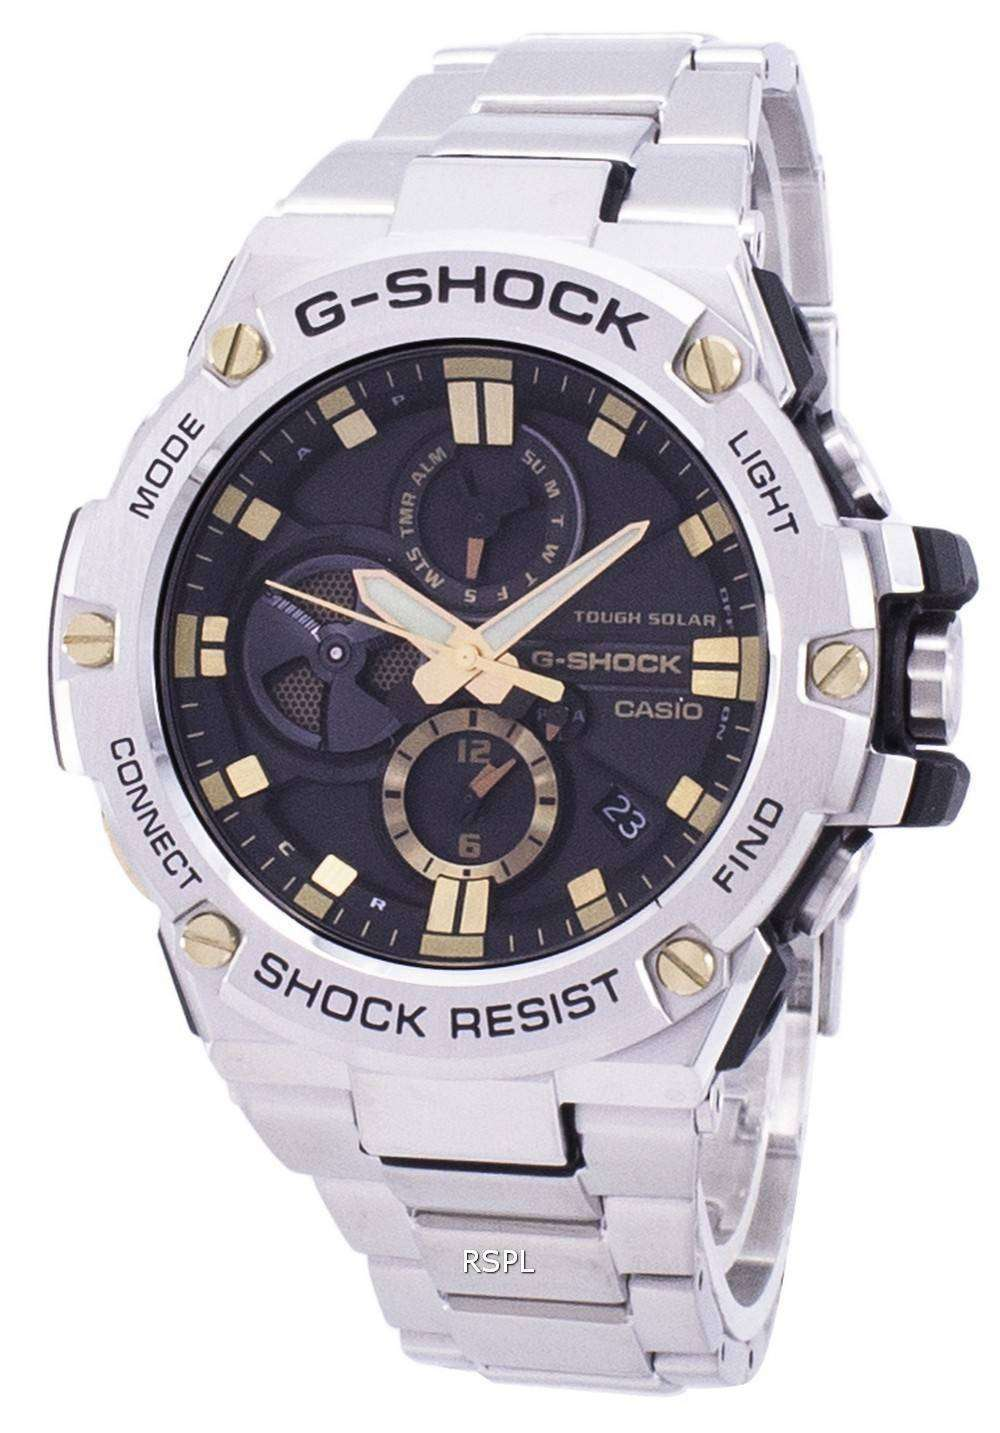 0dbffb0df3c Casio G-Shock G-Steel Tough Solar Bluetooth GST-B100D-1A9 GSTB100D-1A9  Men s Watch